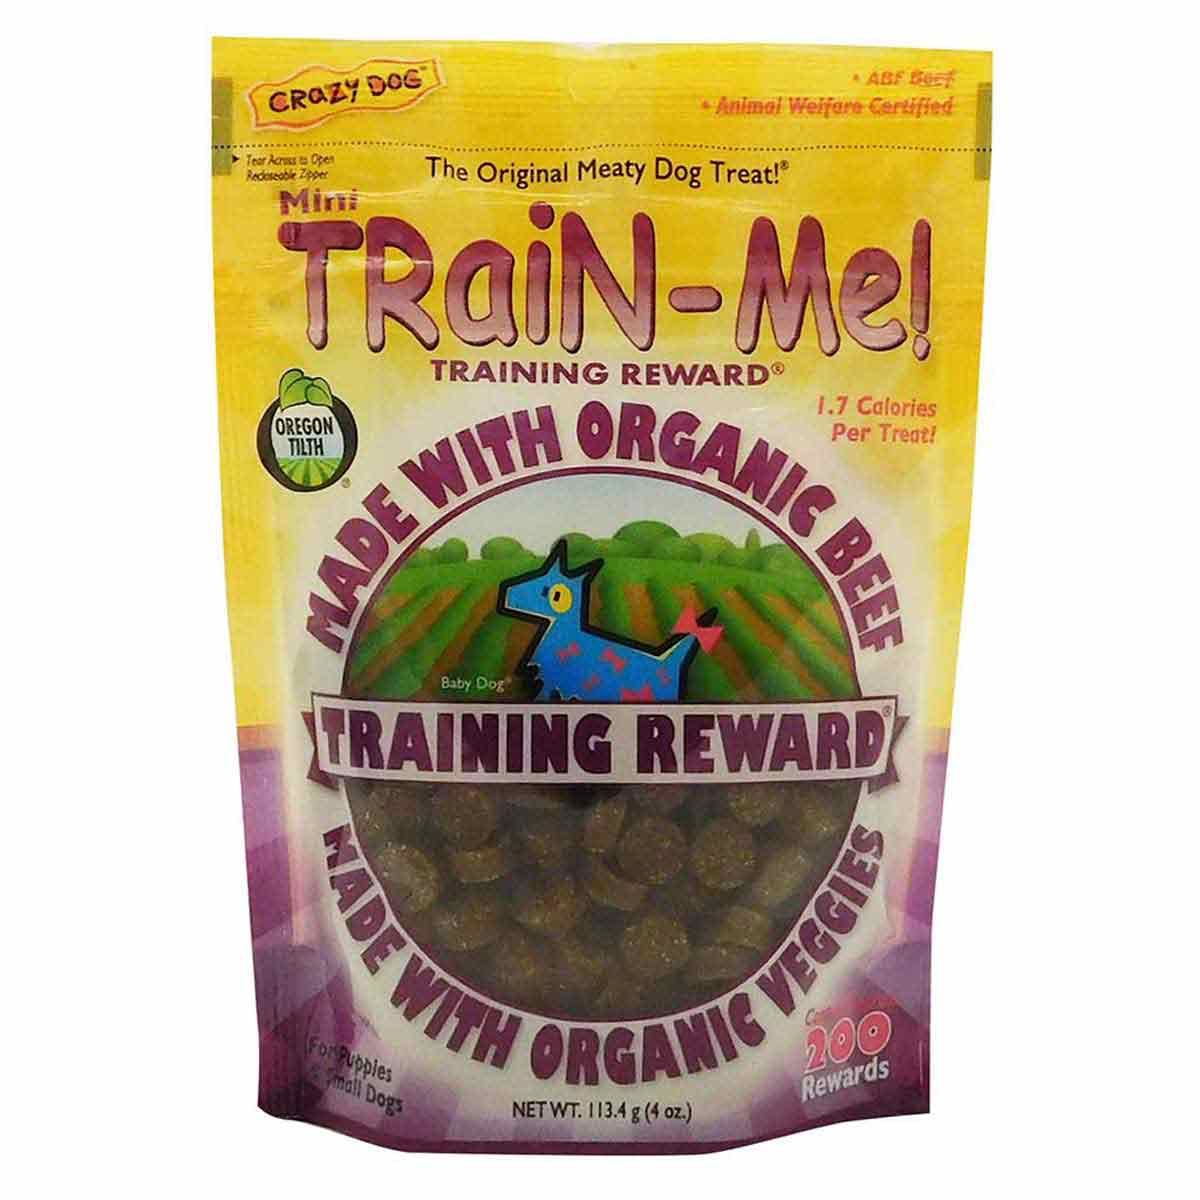 Crazy Dog Organic Mini Train-Me! Treats for Puppies & Small Dogs - Beef 4 ounces